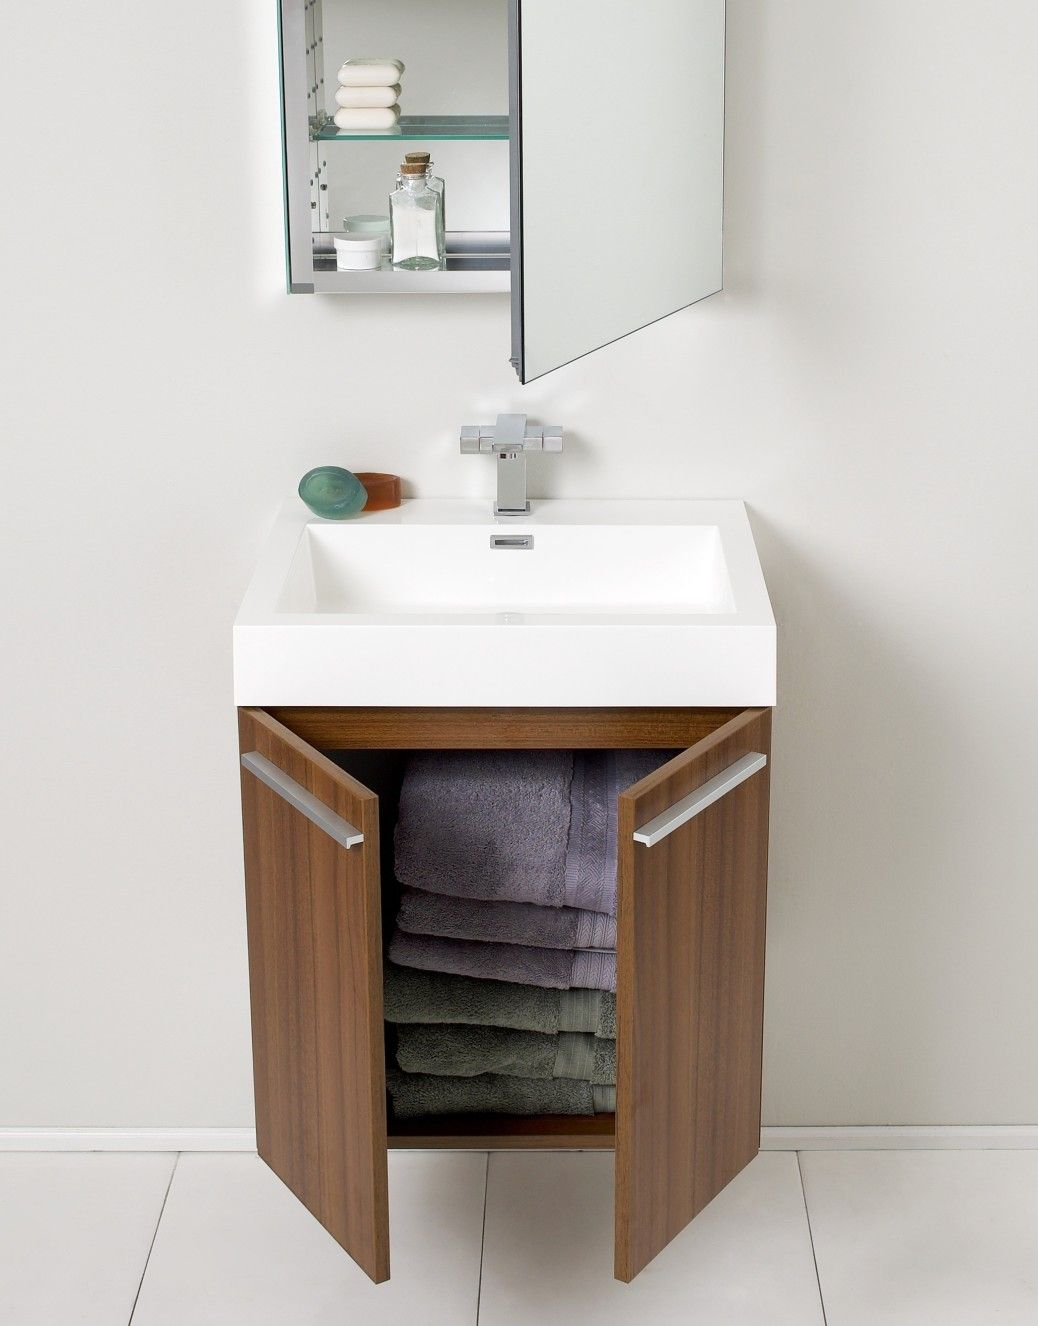 Small Bathroom Sink With Storage  Back Bathroom Ideas  Pinterest Captivating Bathroom Sinks Small Inspiration